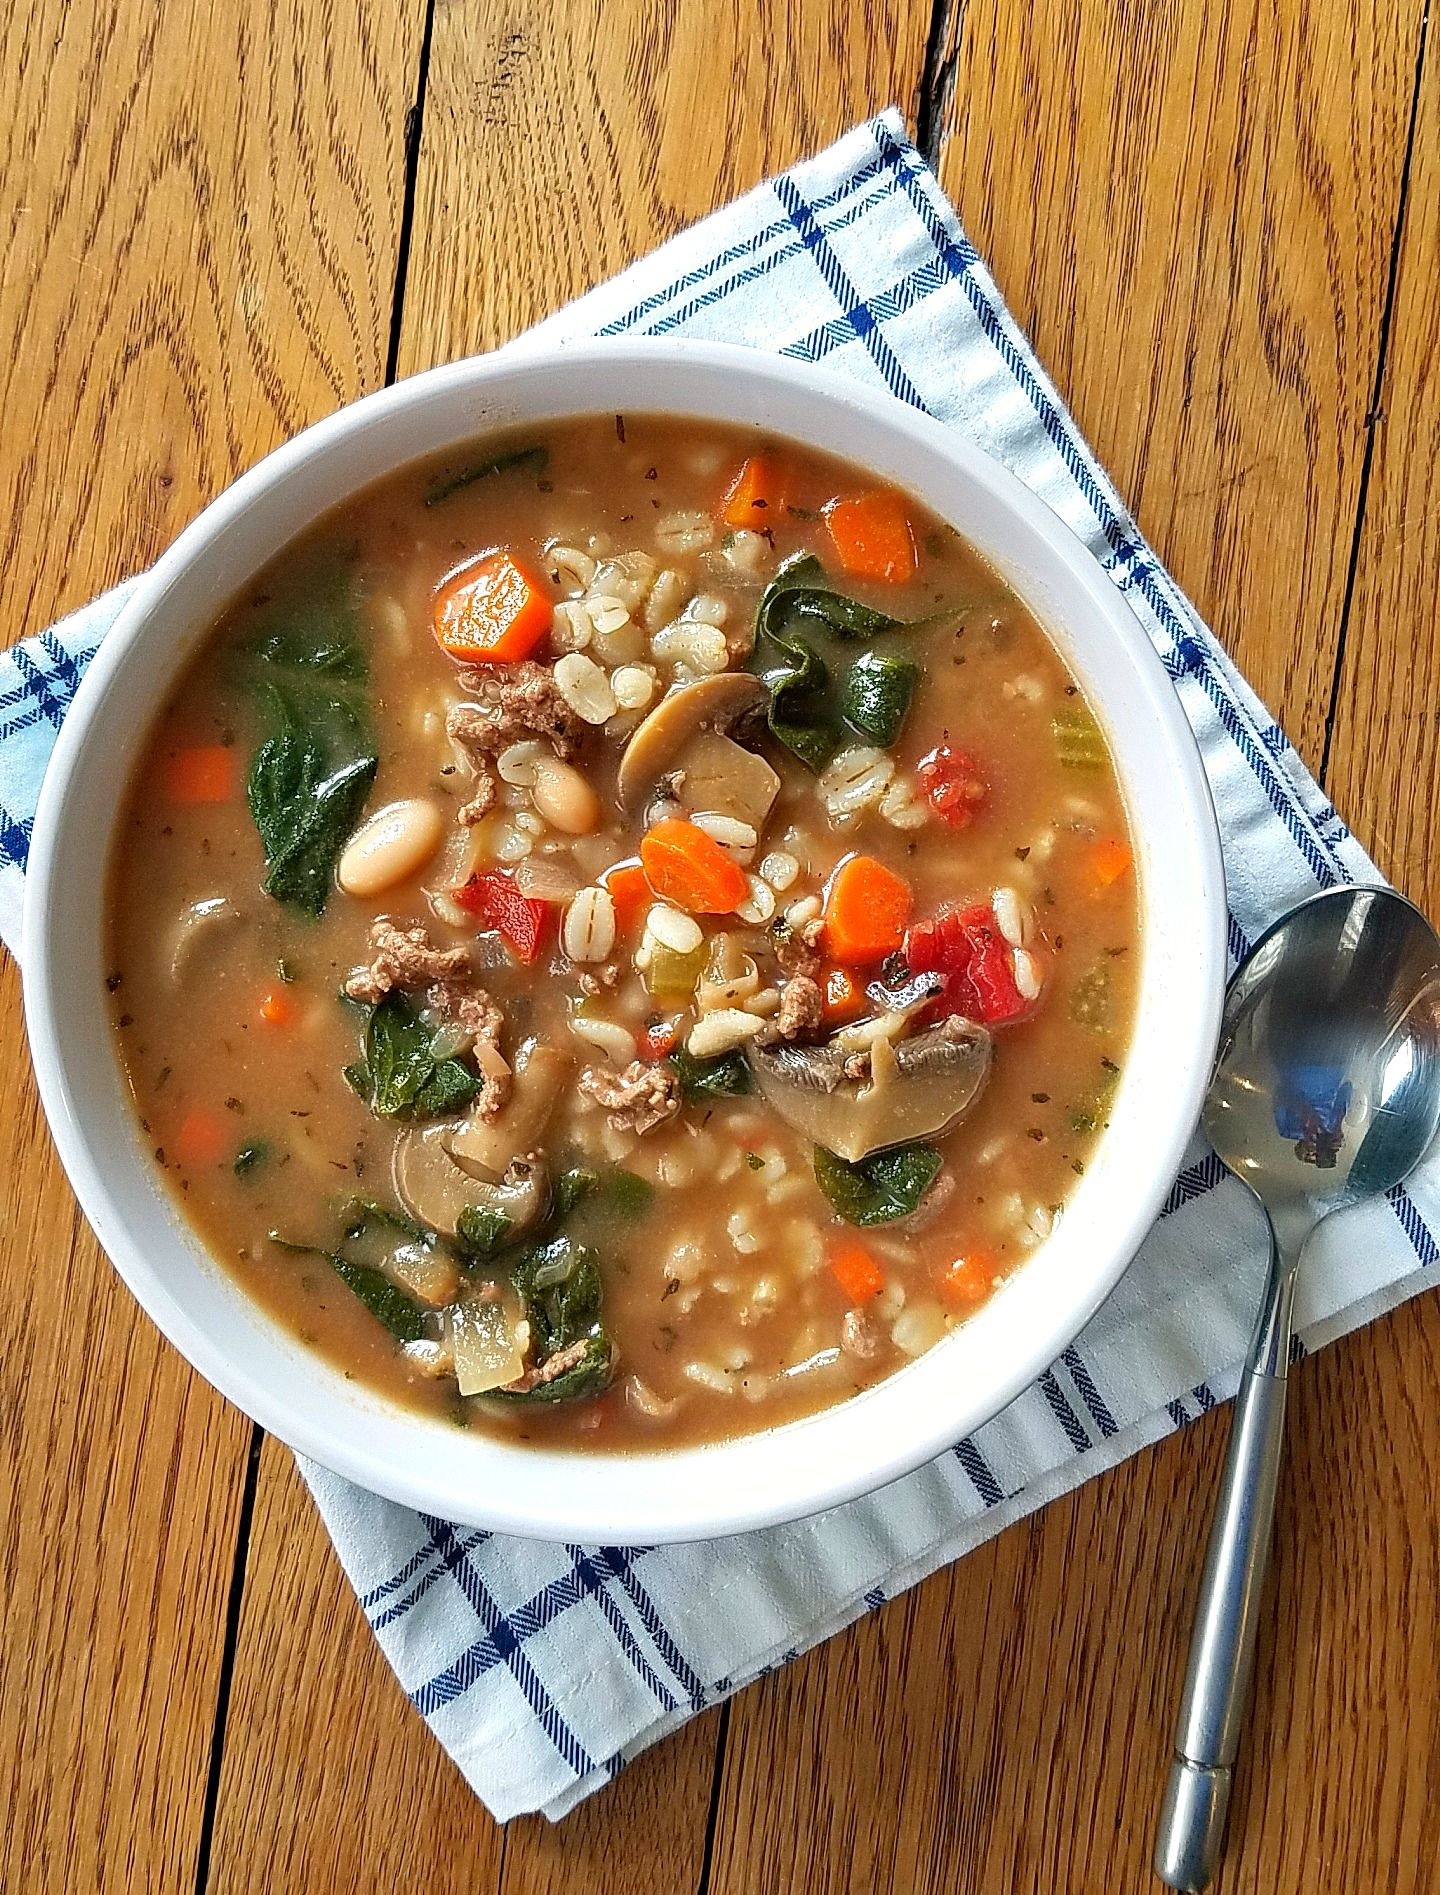 Beef Barley Vegetable Soup = bowl full of health-boosting benefits. Family-friendly.